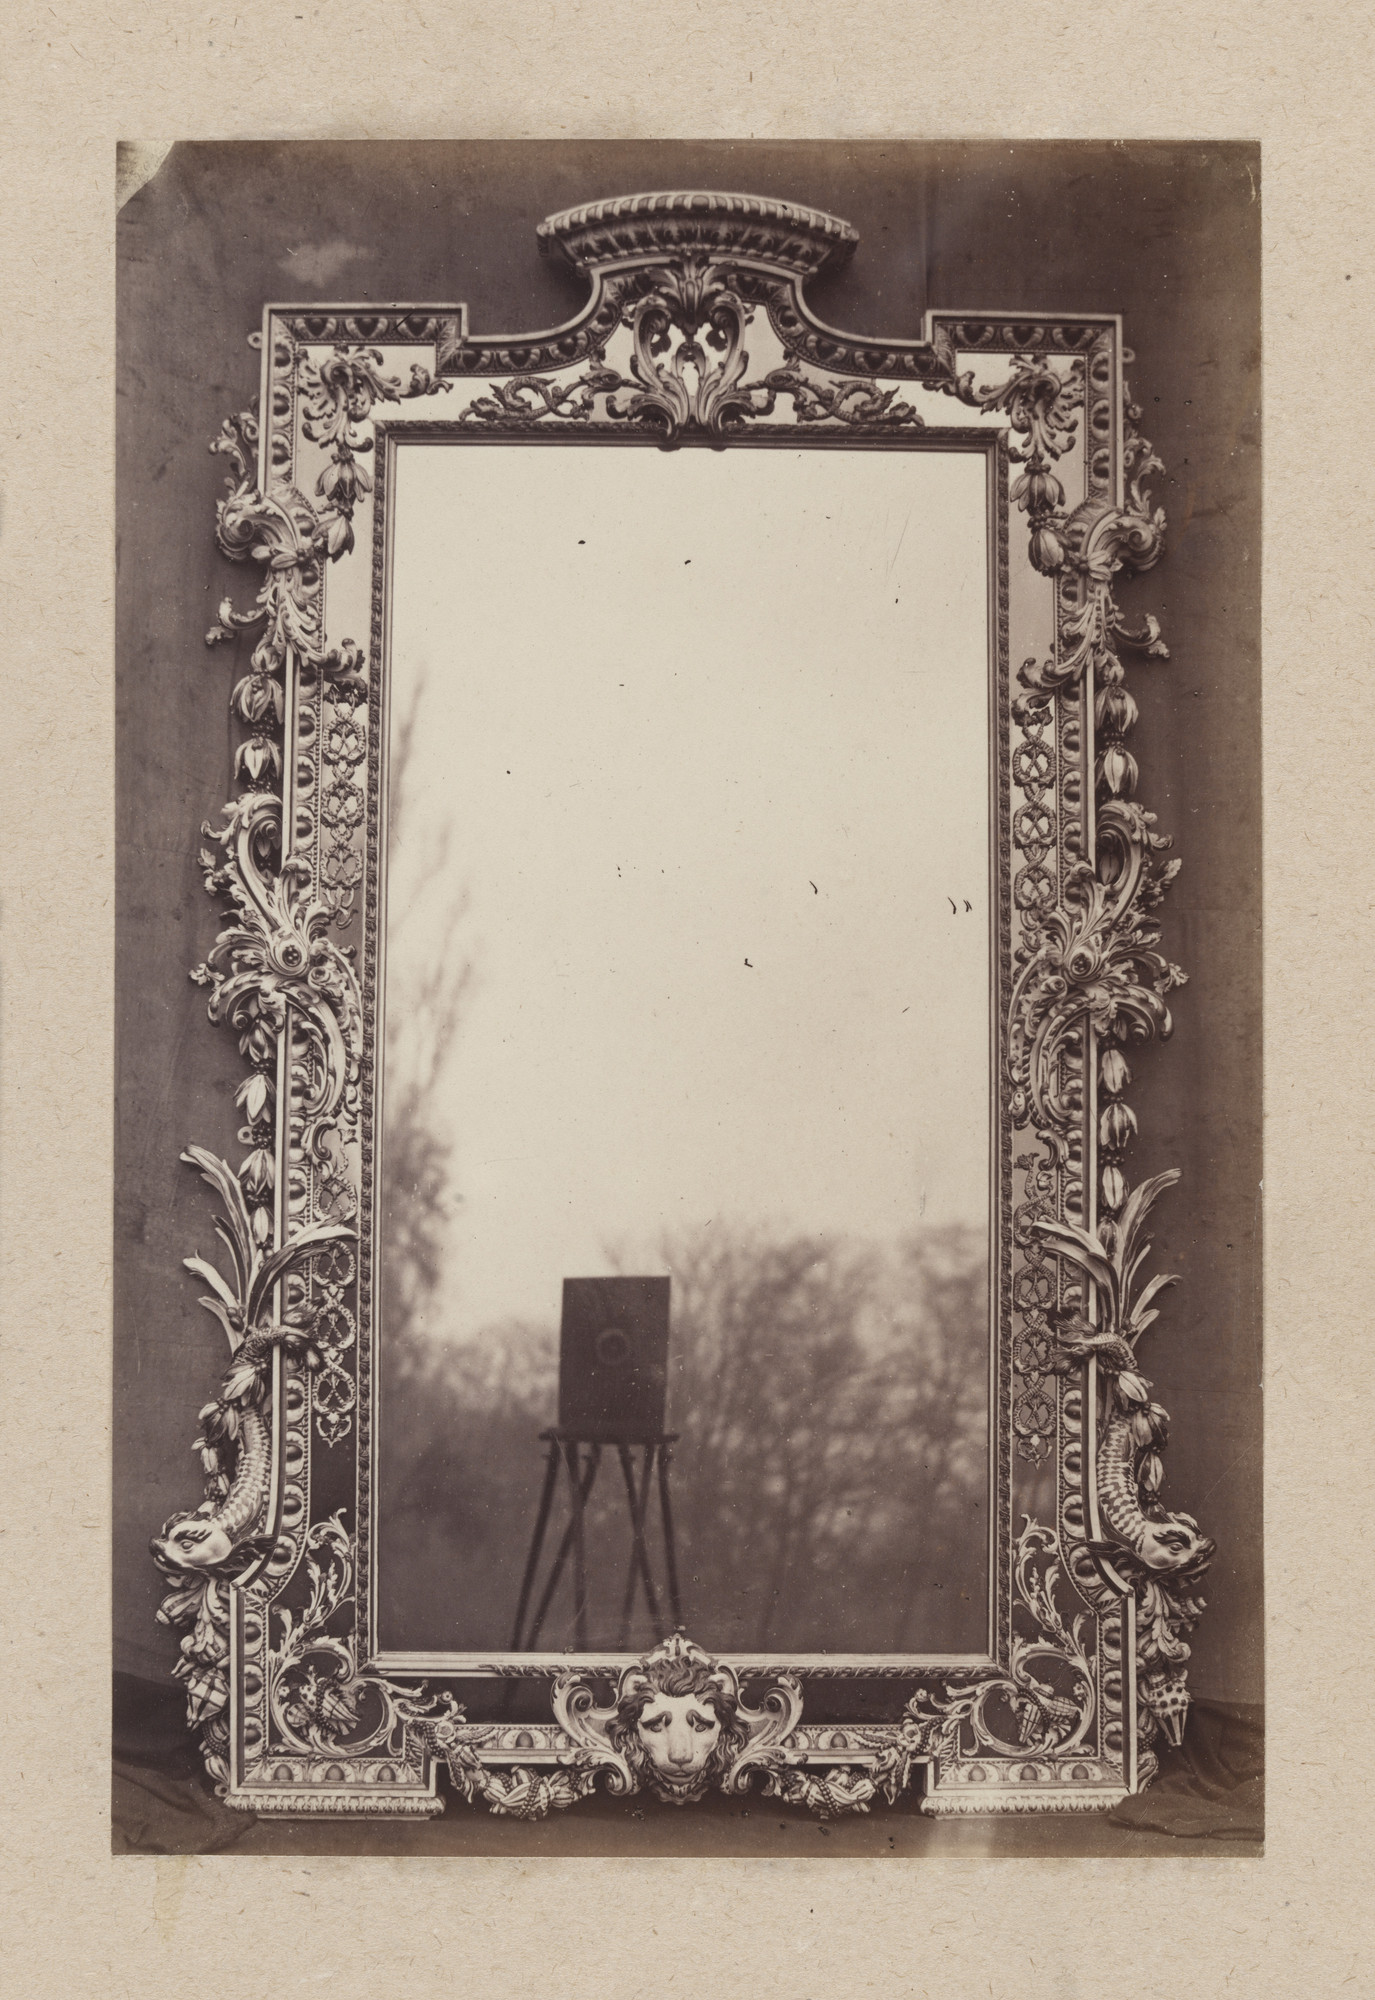 Charles Thurston Thompson. English Mirror, c. 1730, from Cumberland Lodge, Windsor Forest. 1853